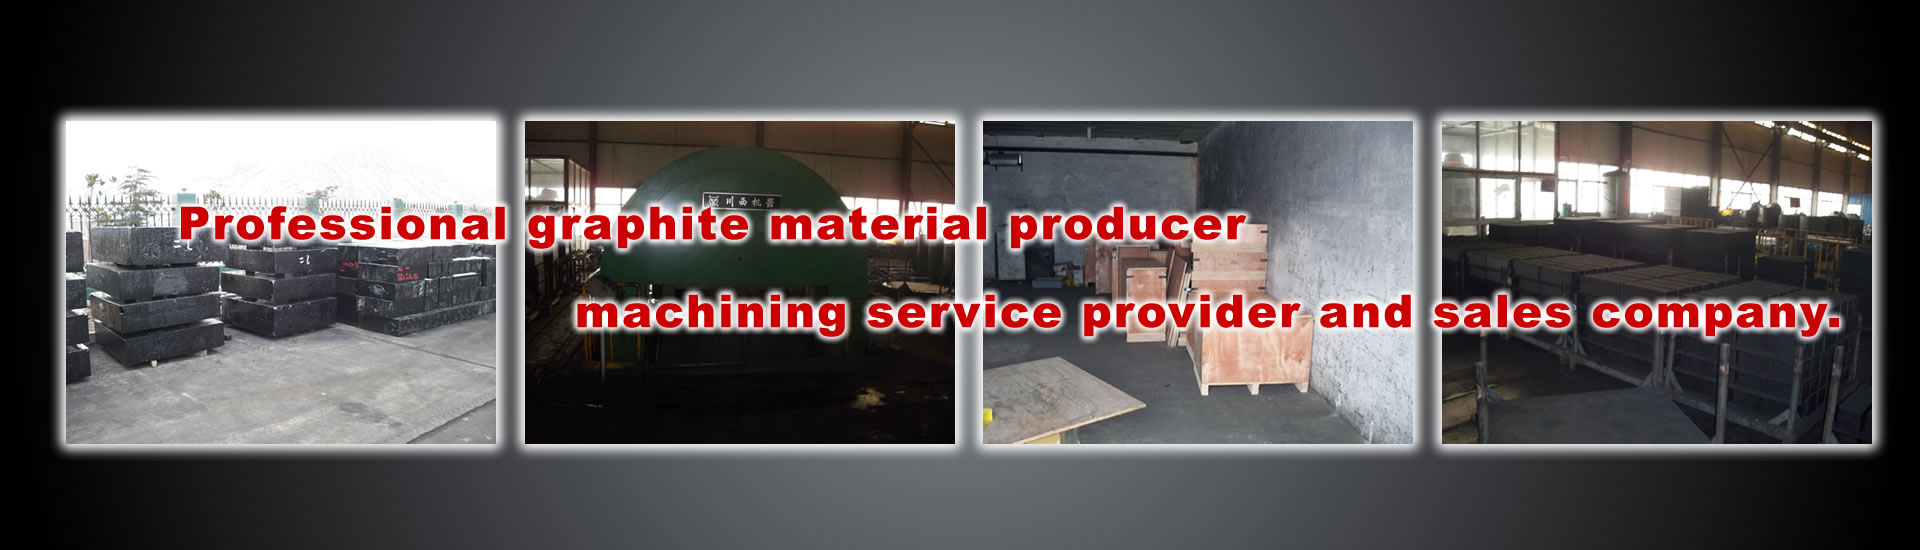 Professional graphite material producer, machining service provider and sales company.